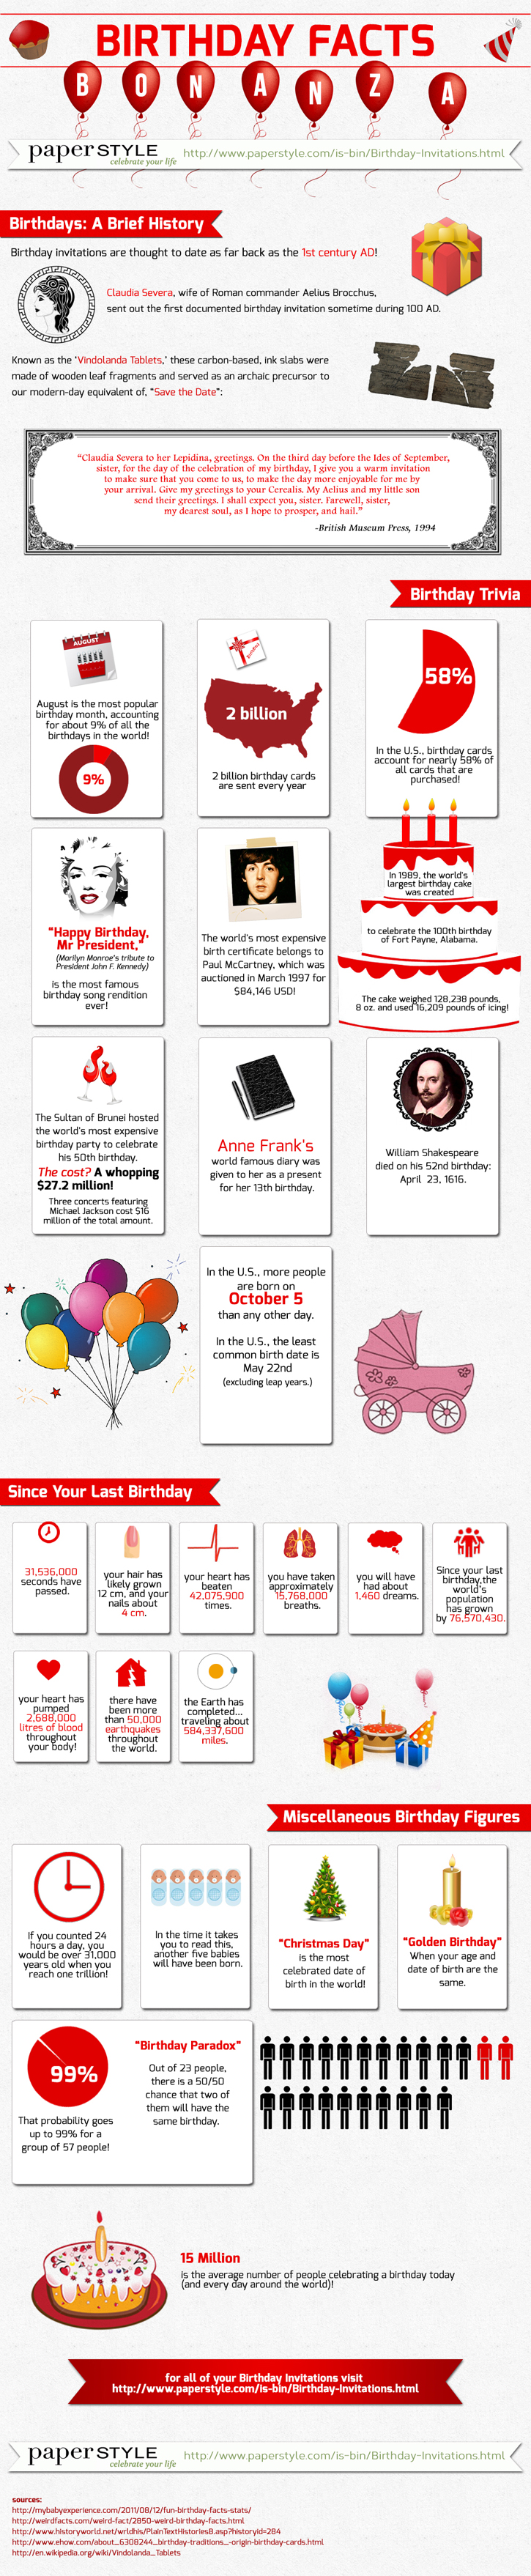 What to Write in a 40th Birthday Card BrandonGaille – Things to Write in a 40th Birthday Card